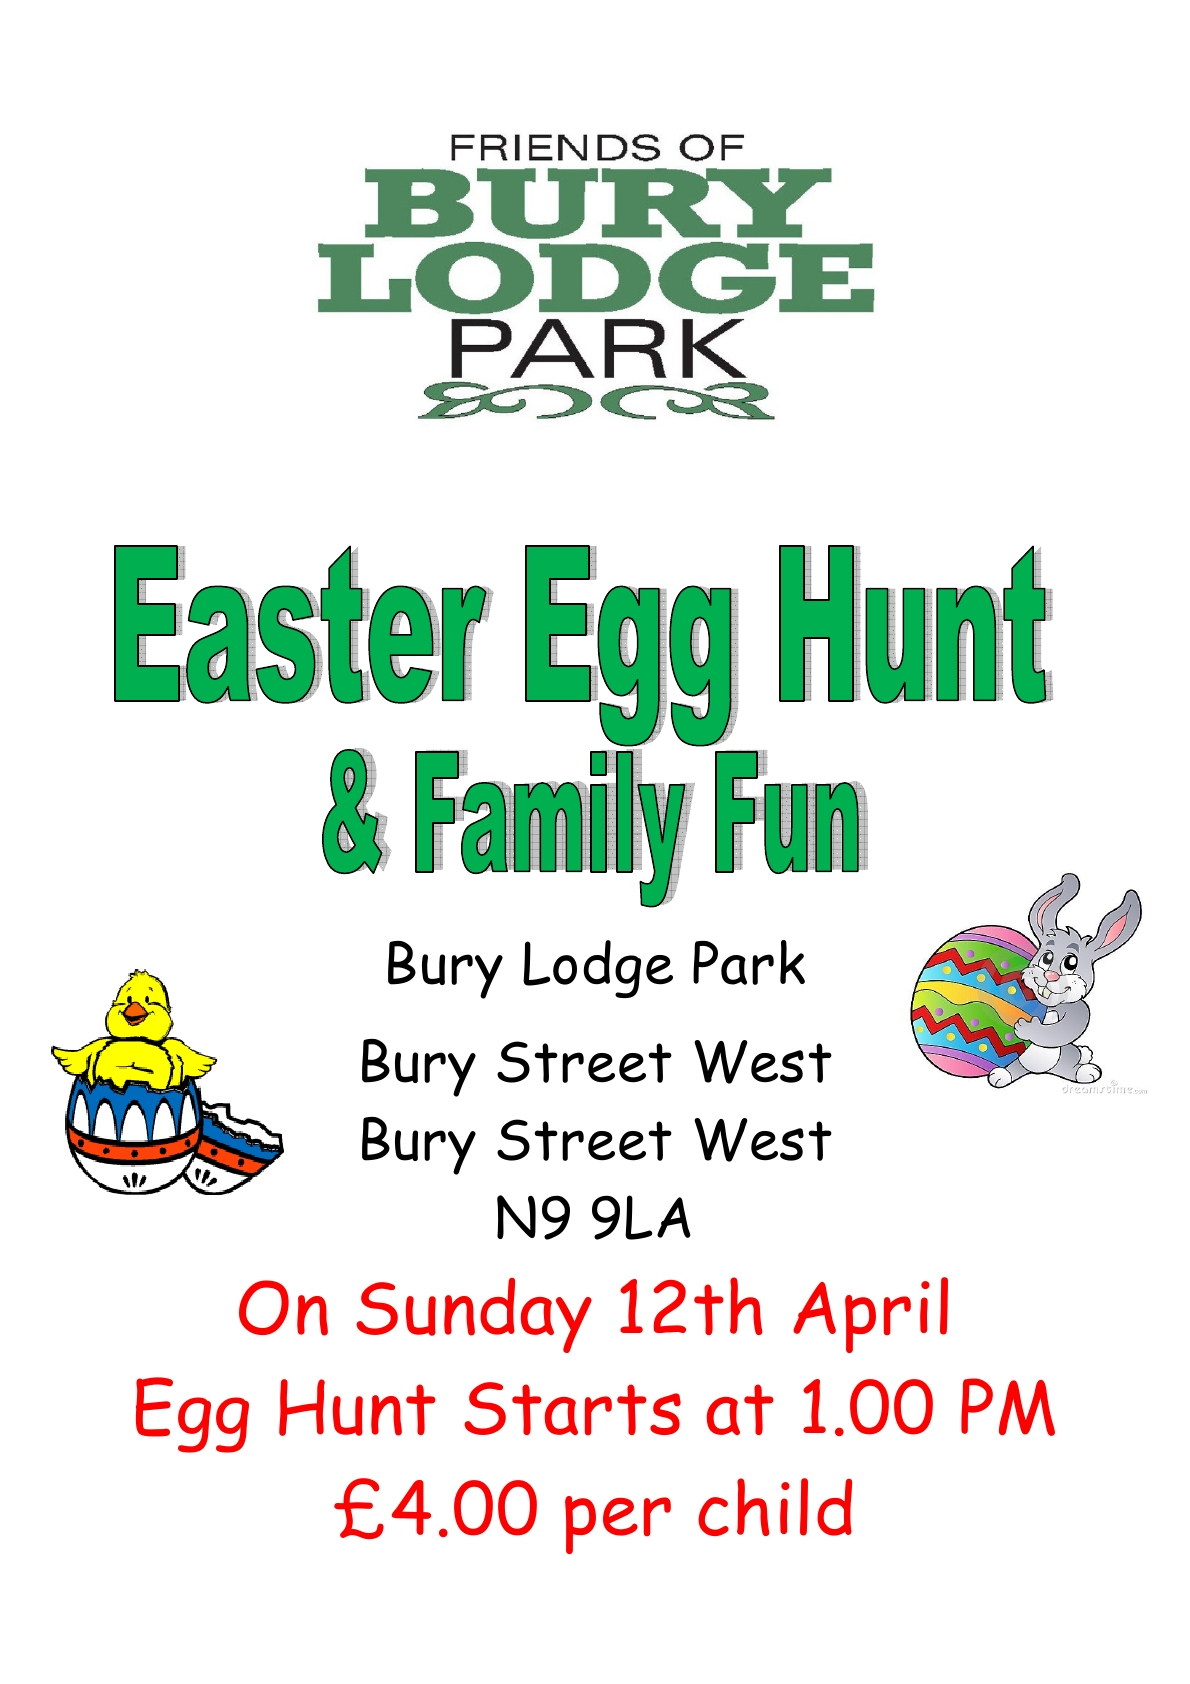 Friends of Bury Lodge Easter Egg Hunt